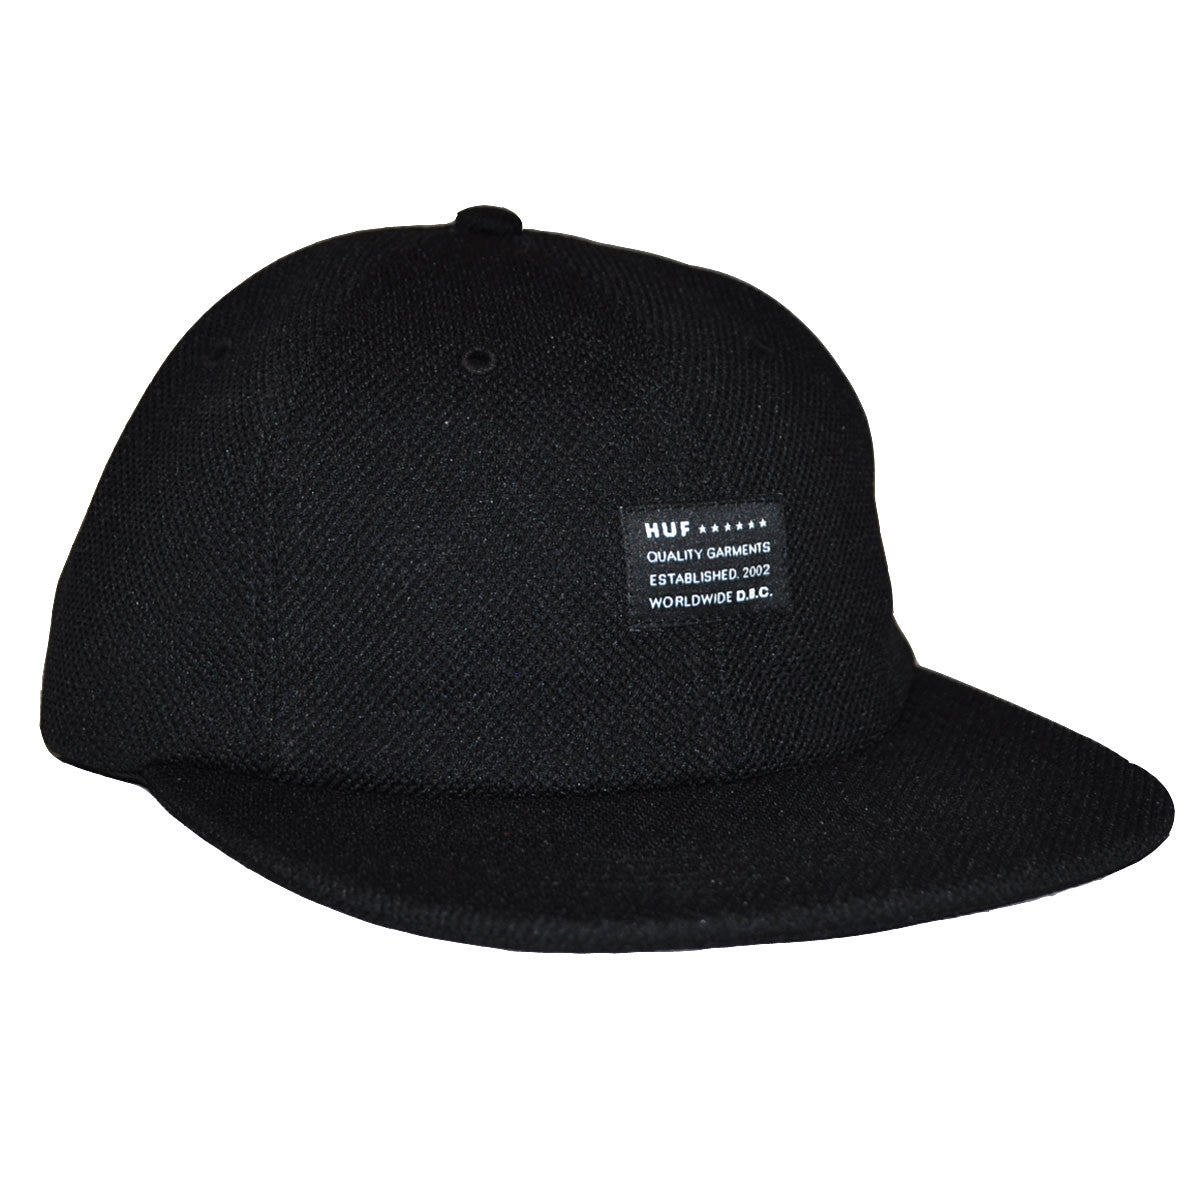 HUF - Diamond Knit 6 Panel Hat, Black - The Giant Peach - 1